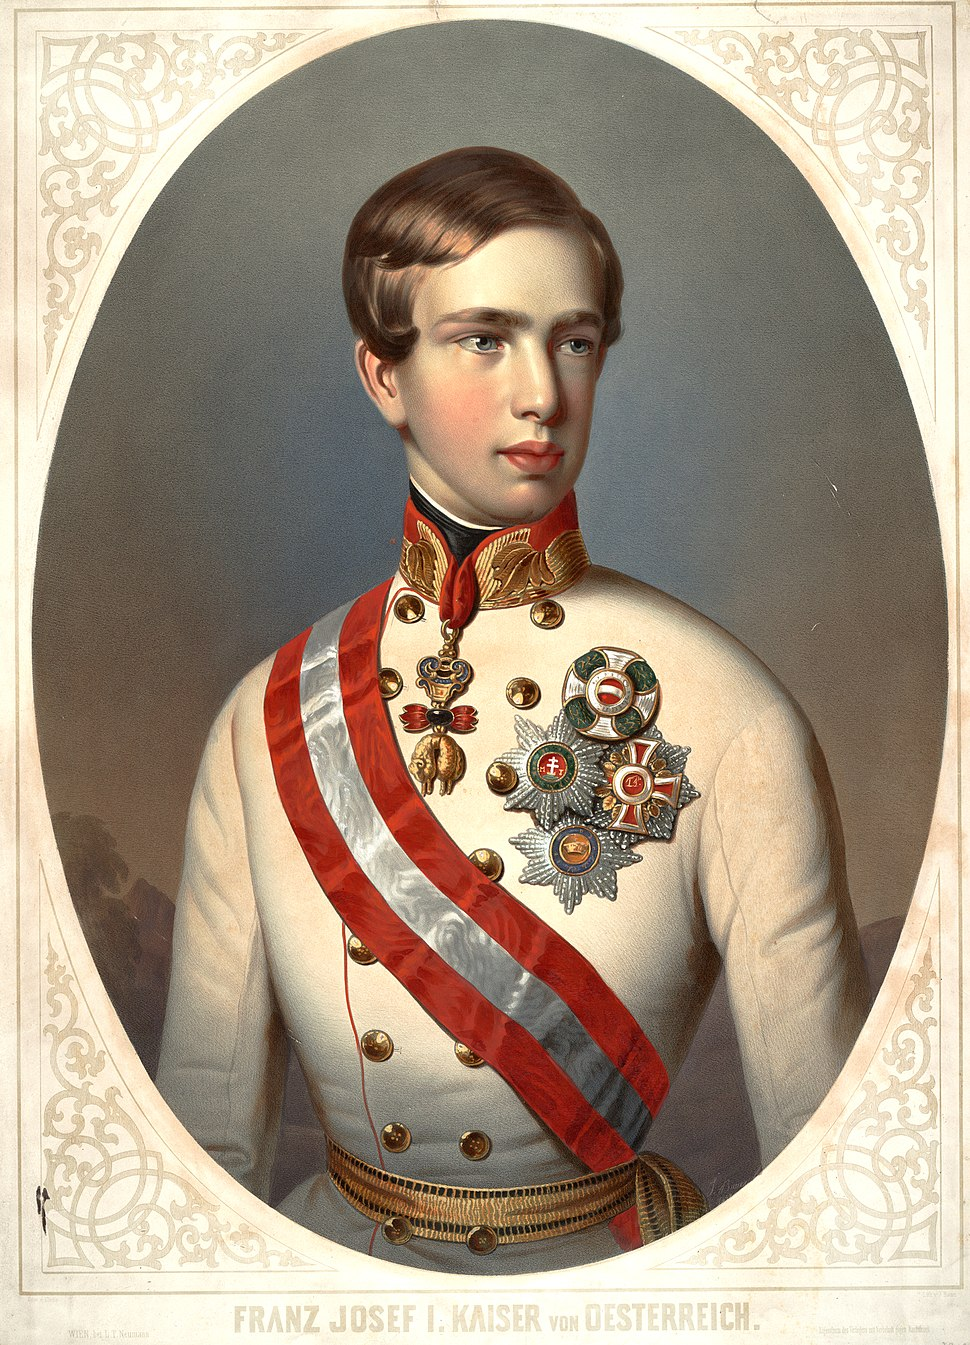 Franz Joseph I of Austria Bauer color lithograph by and after Bauer, dated 1848 by artist; oval bust portrait in uniform and orders